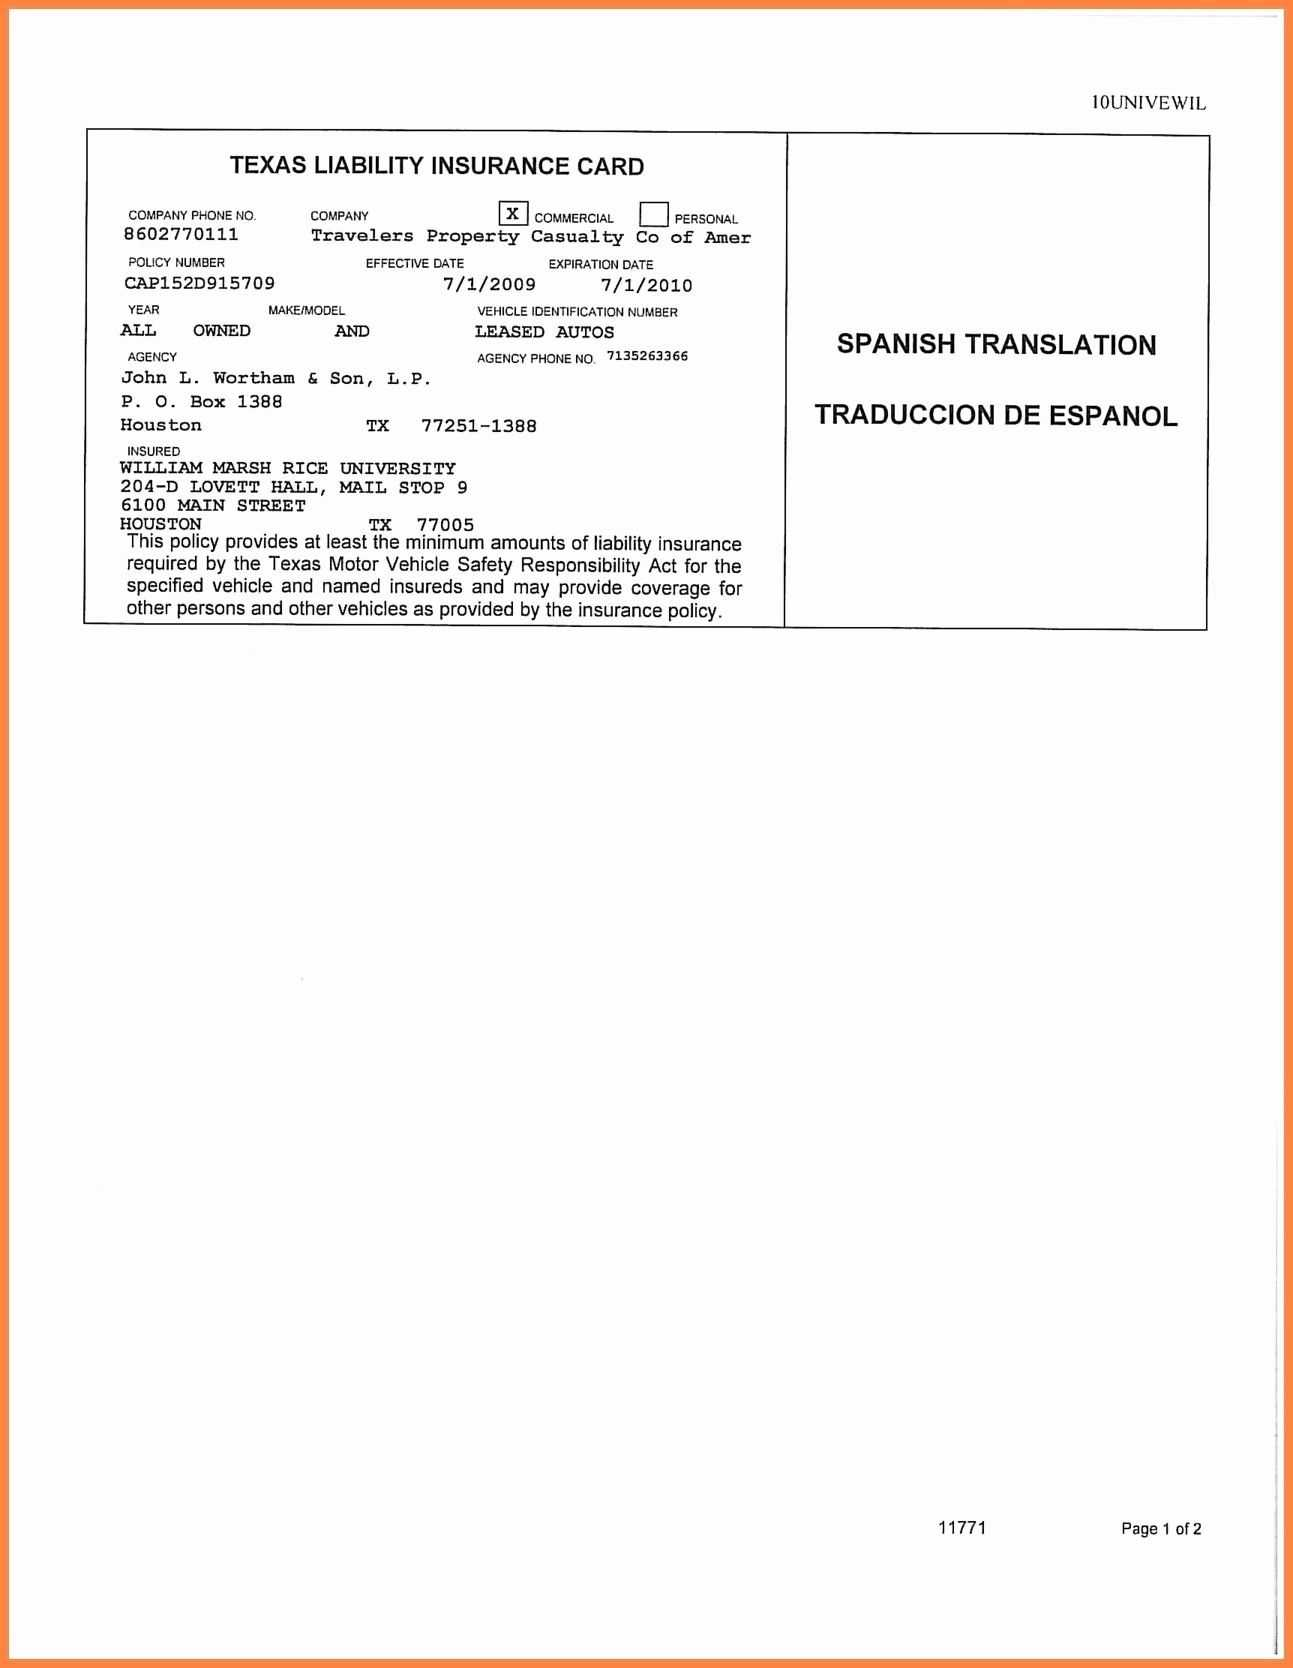 Auto Insurance Card Template Free Download #2 In 2019 | Id For Auto Insurance Card Template Free Download